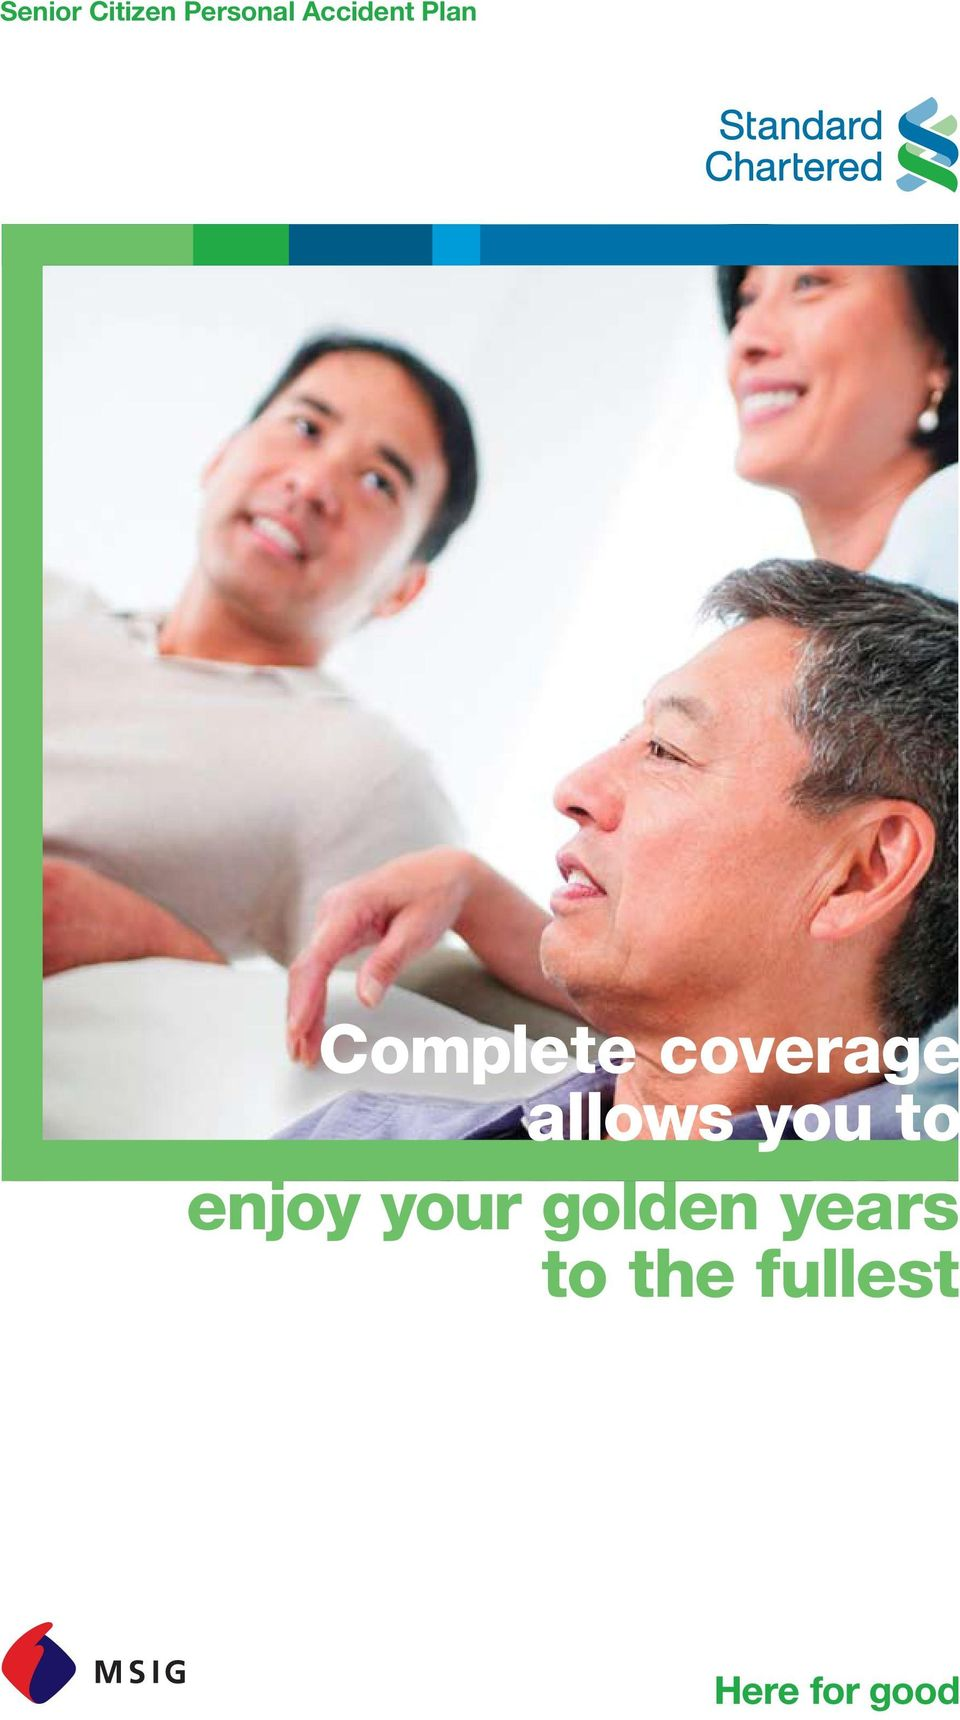 coverage allows you to